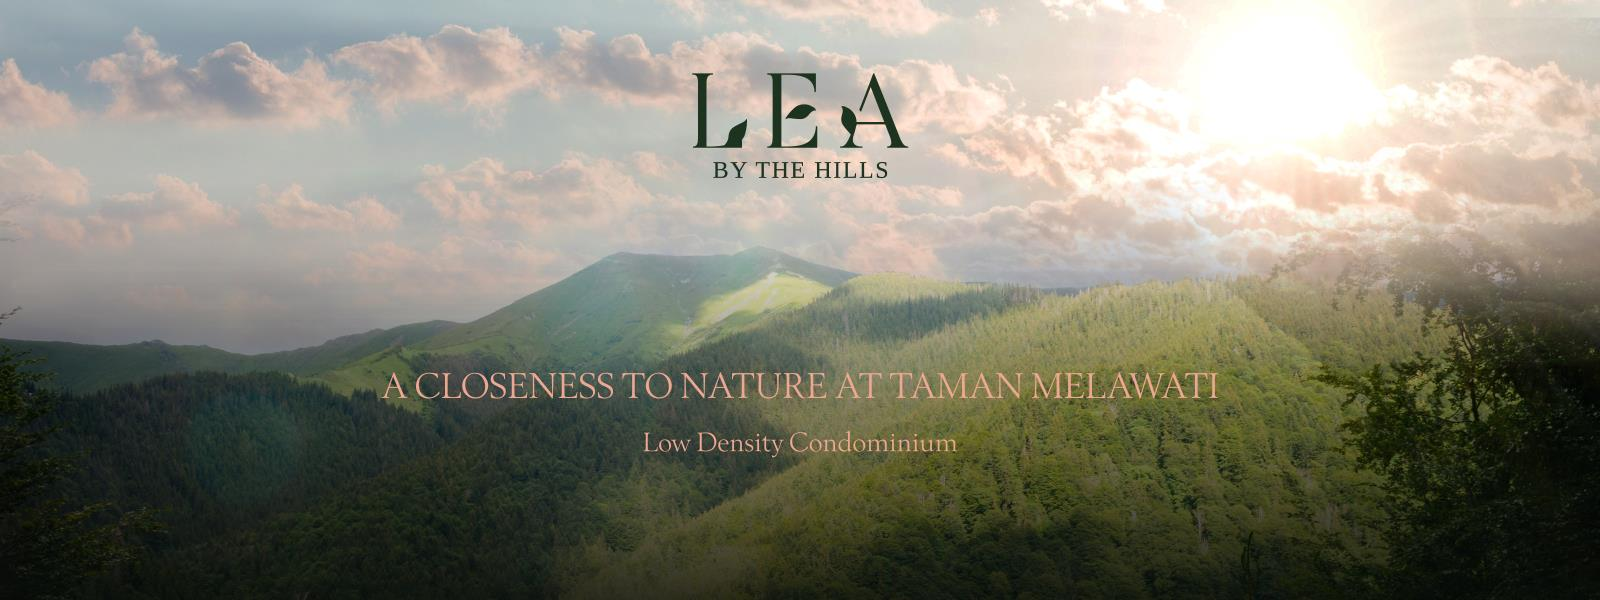 LEA by the Hills